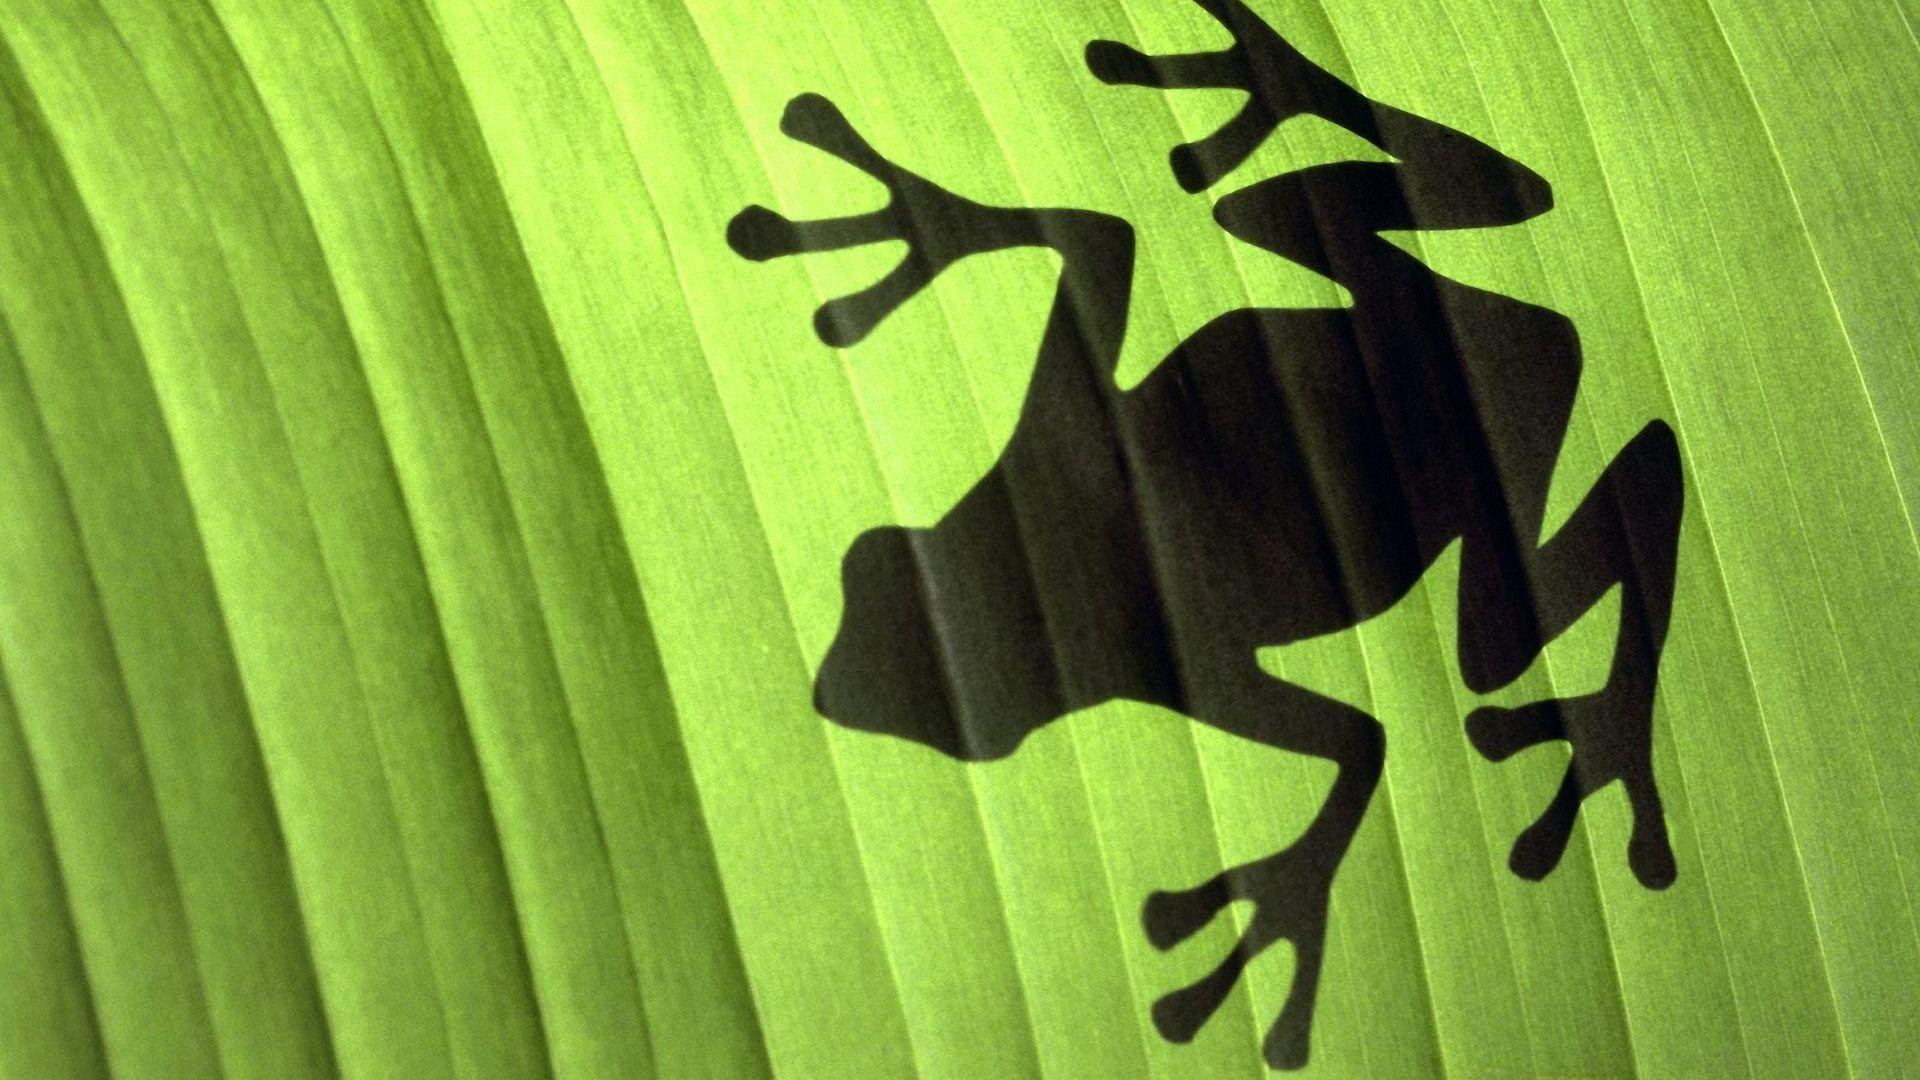 Frog Wallpapers Download Design Ideas ~ Free Frog Wallpapers For